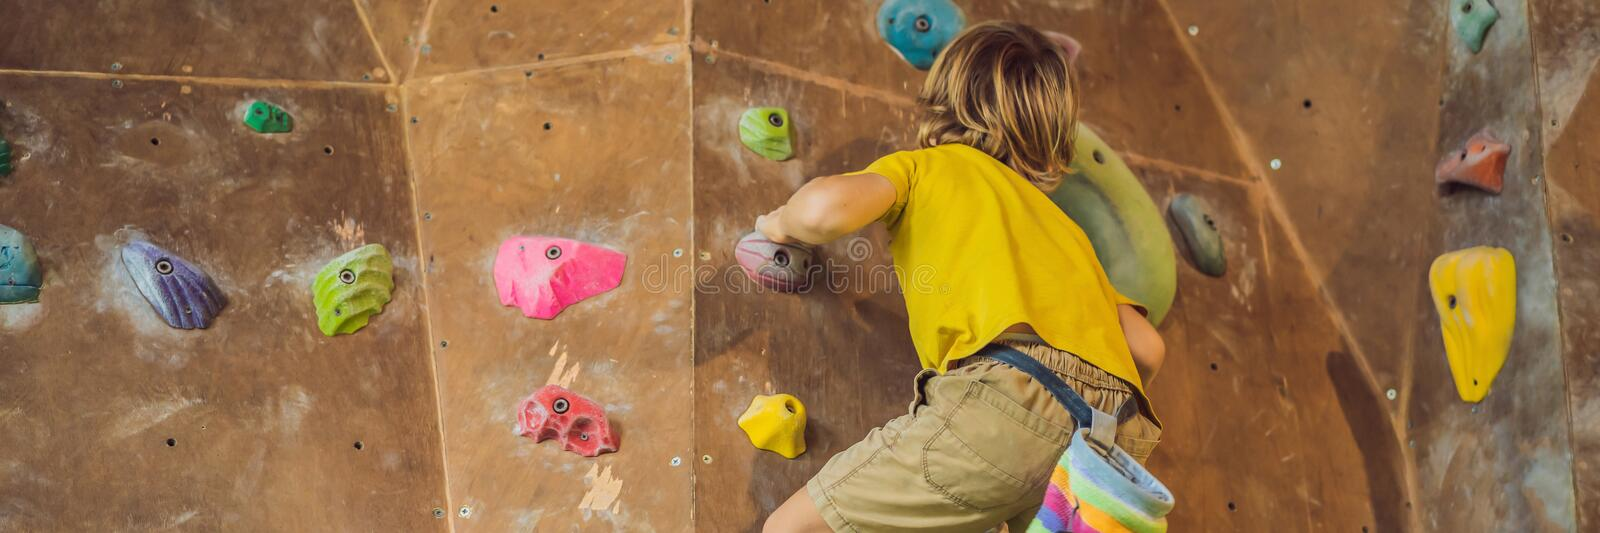 Little boy climbing a rock wall in special boots. indoor BANNER, LONG FORMAT royalty free stock photography